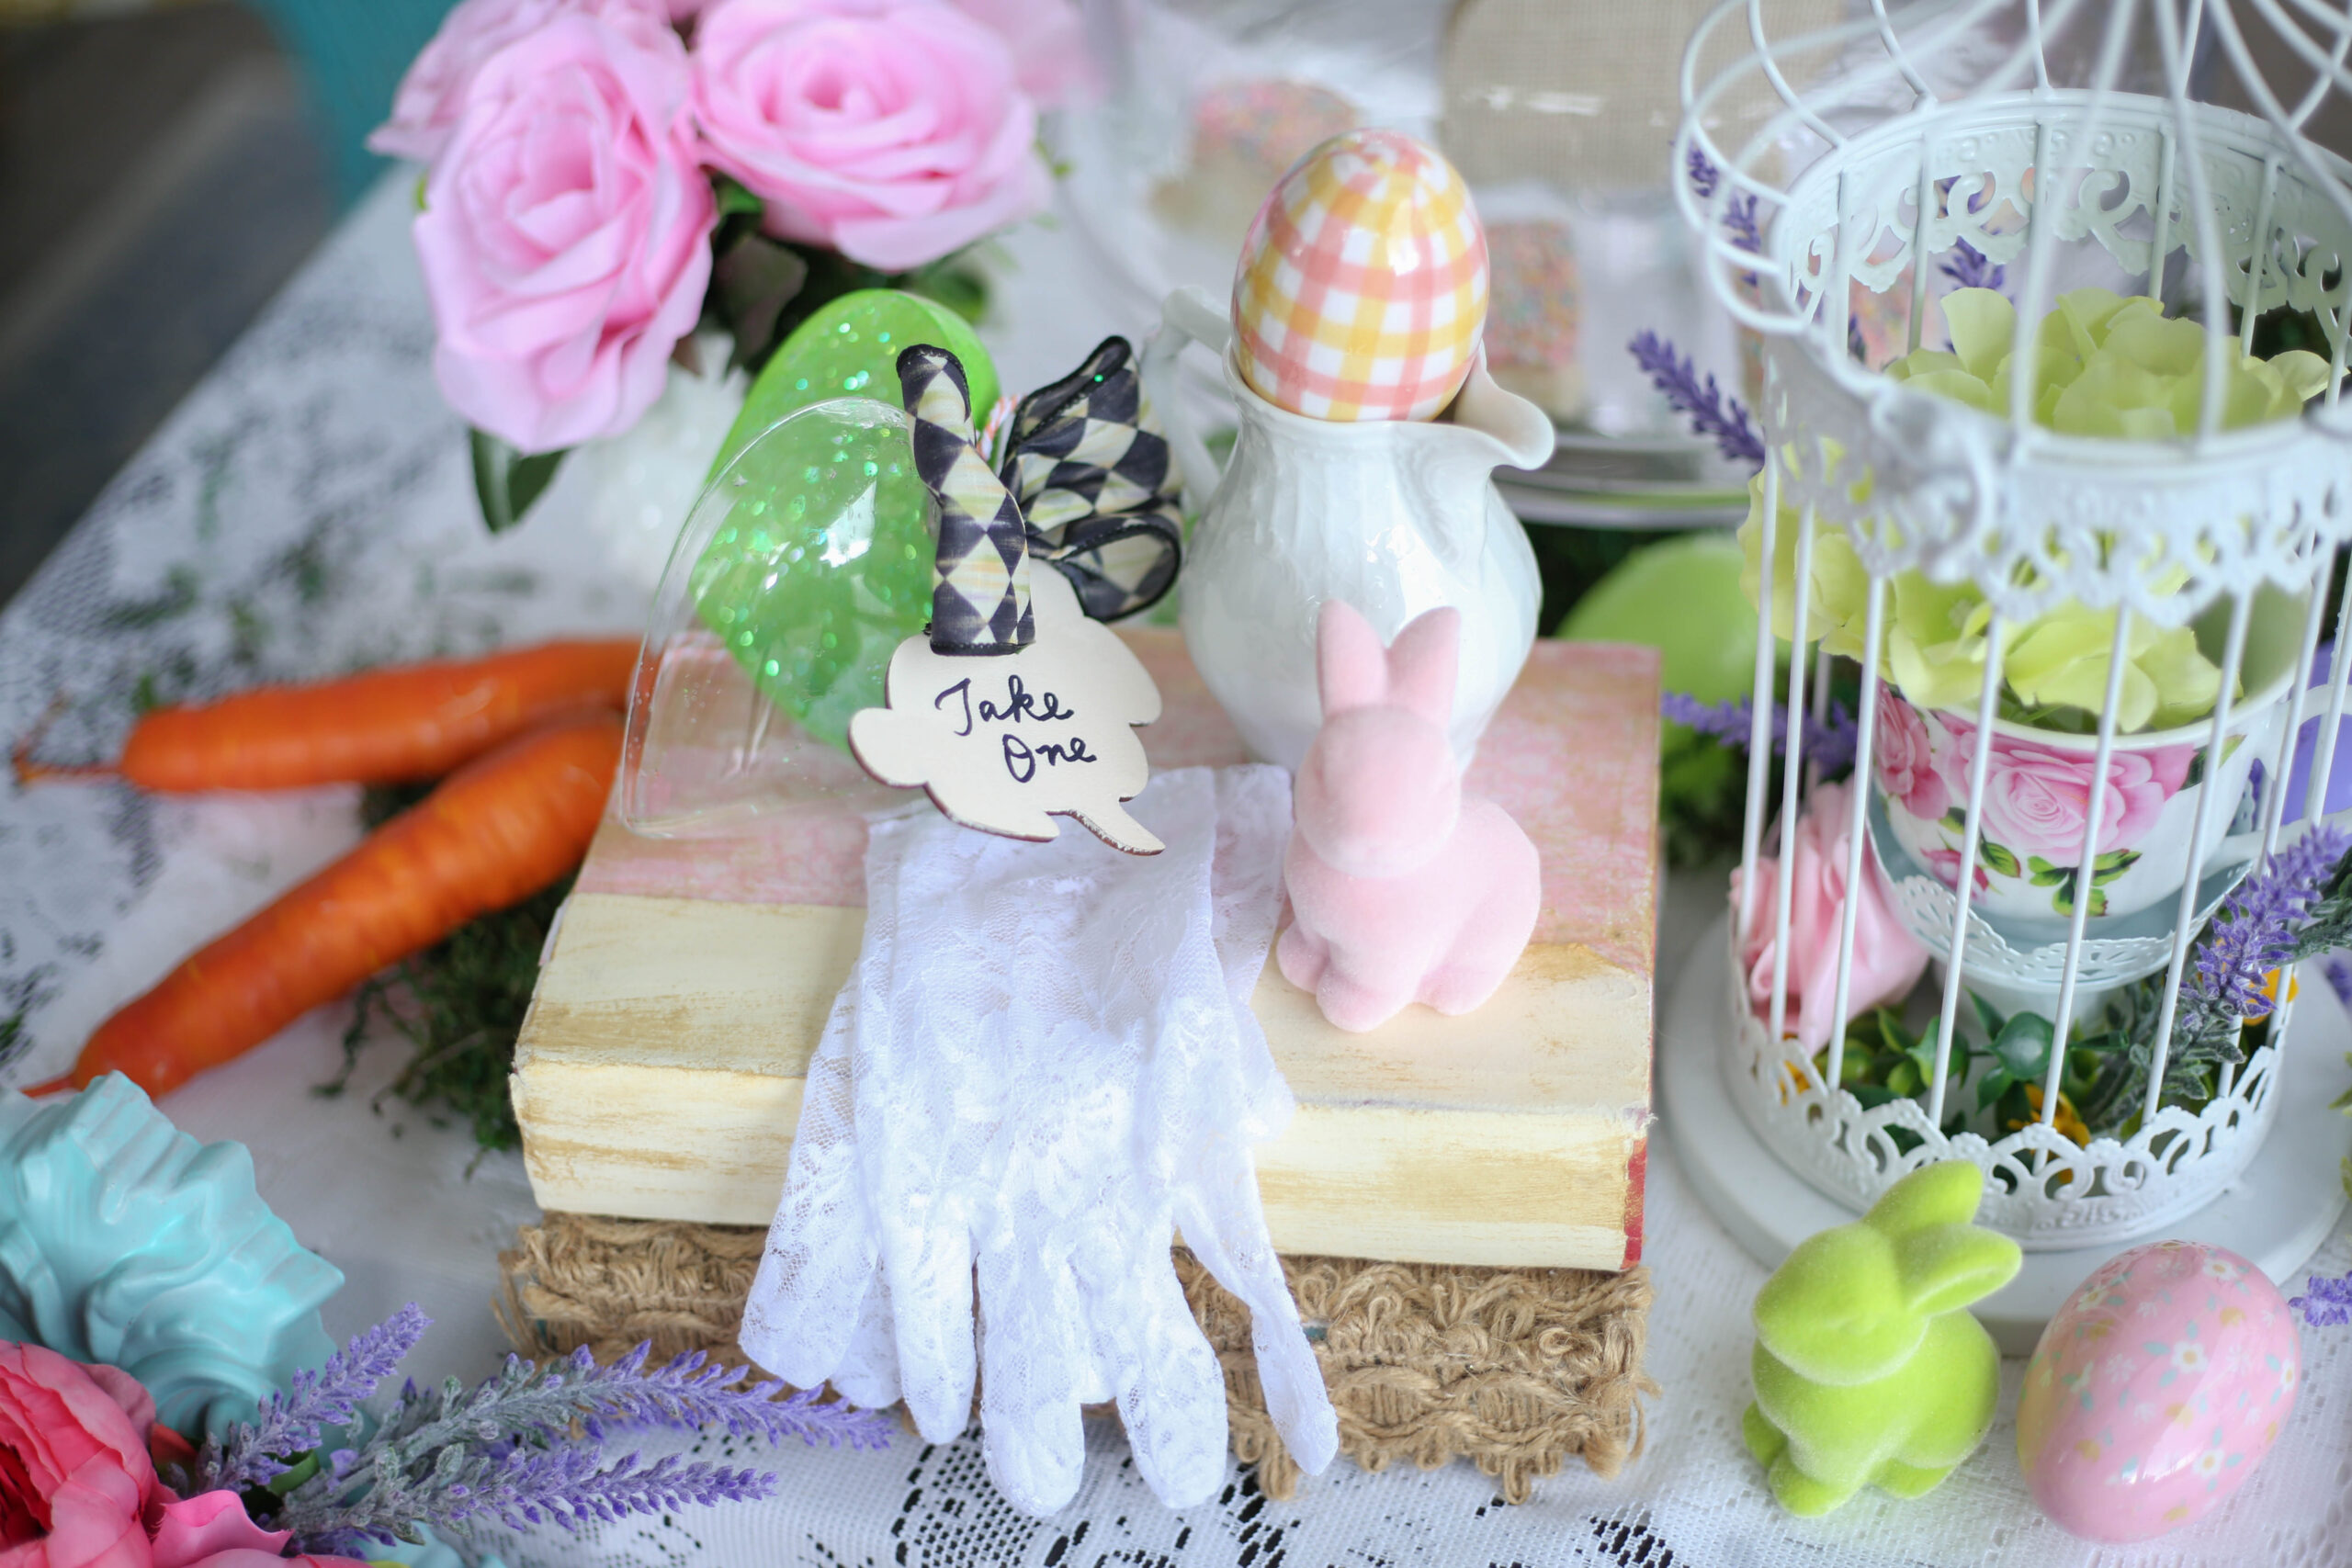 lace gloves as a tea party favor